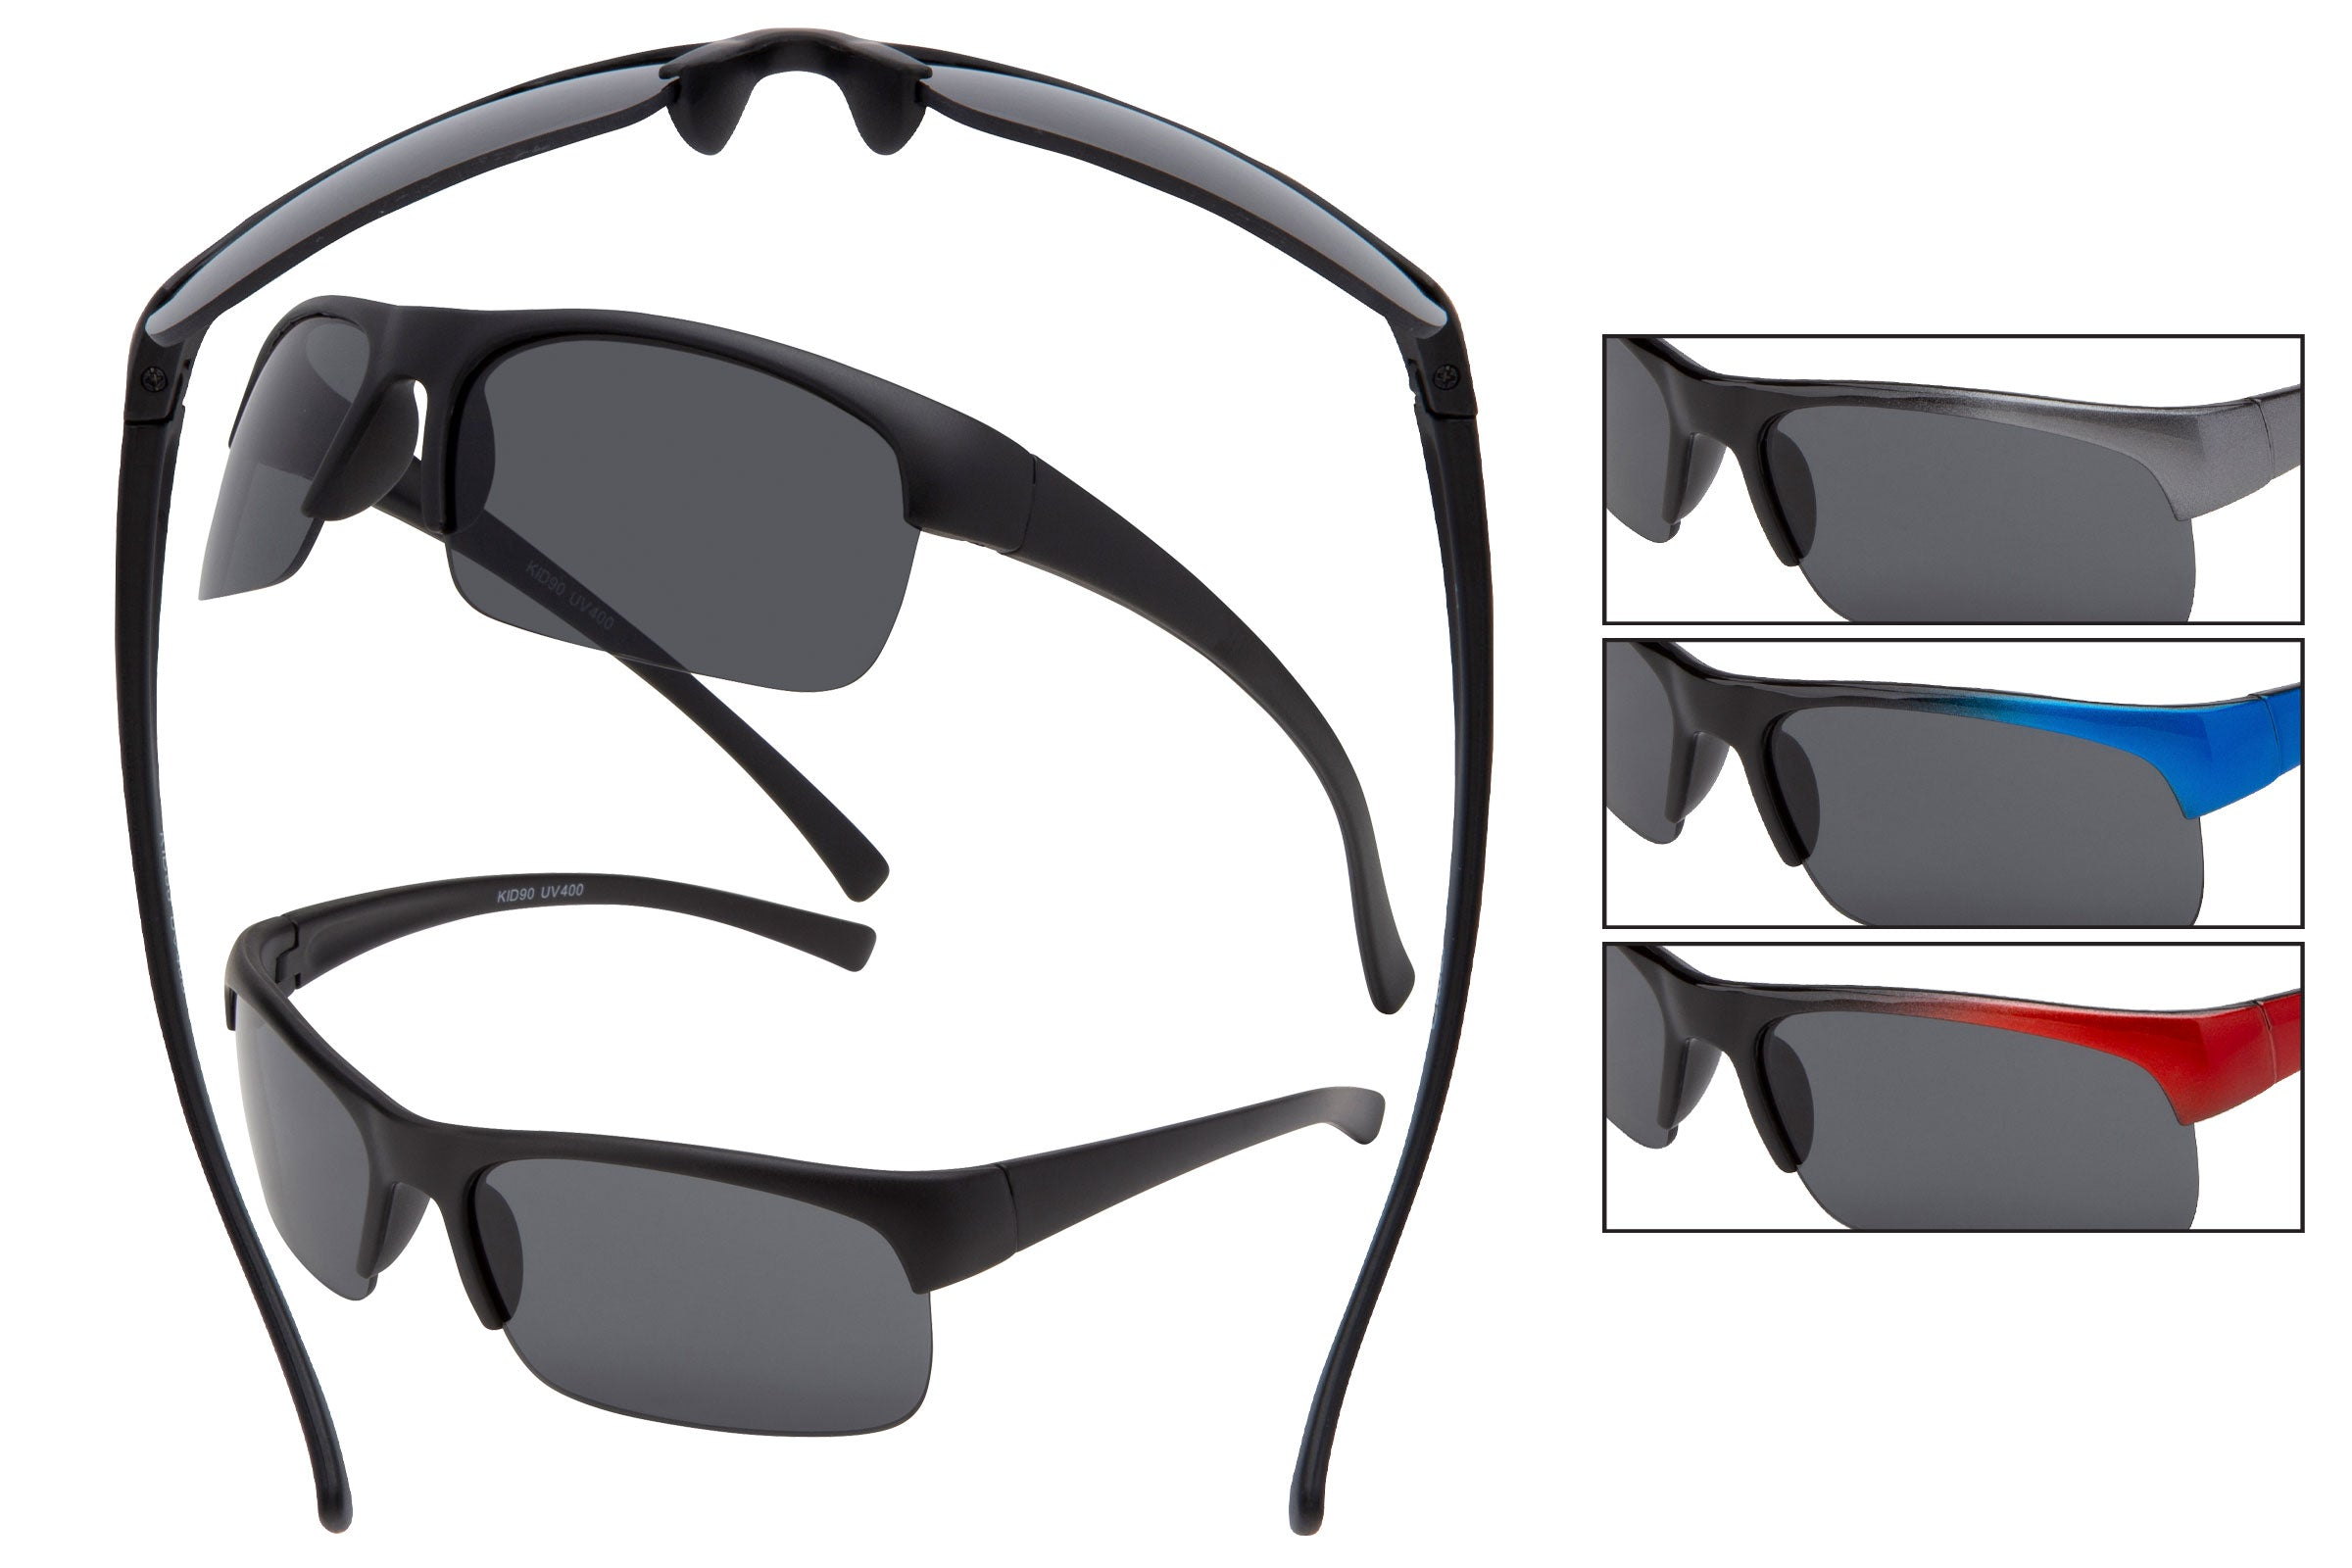 KID90 - Boys Sport Wrap Sunglasses